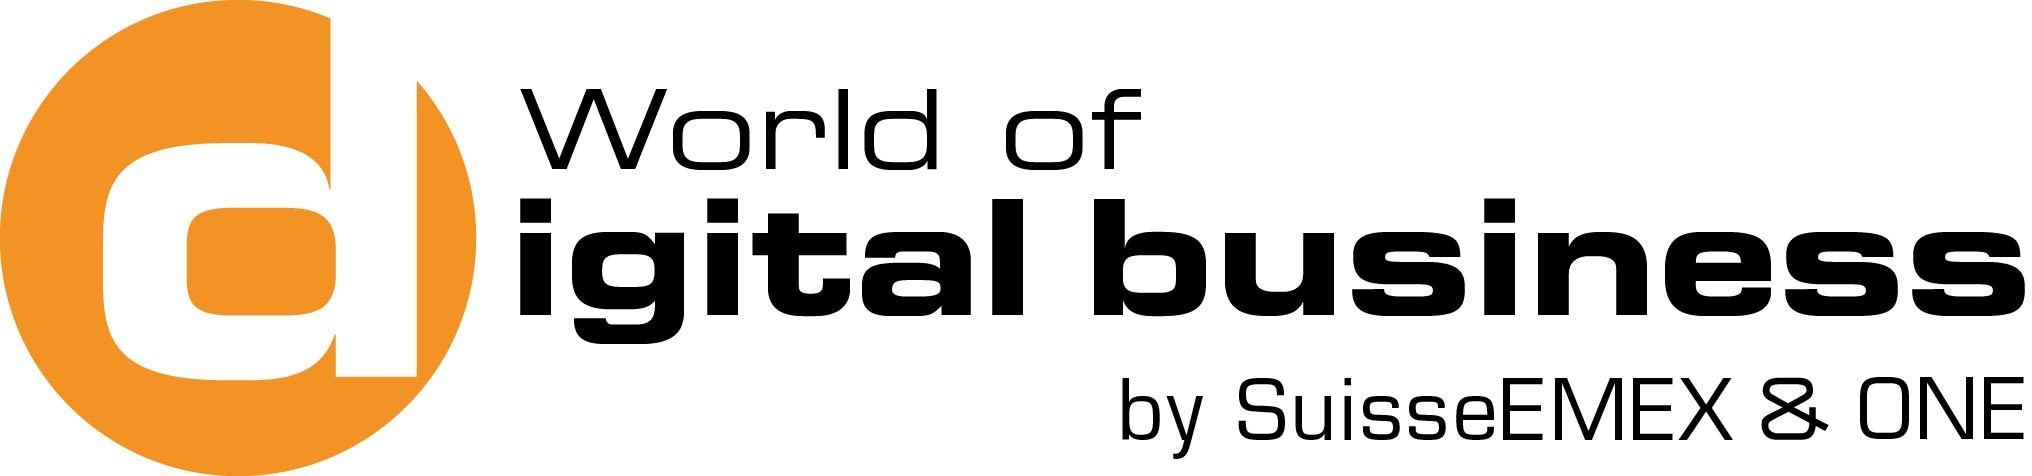 Logo EMEX World of Digital Business_RGB_300dpi